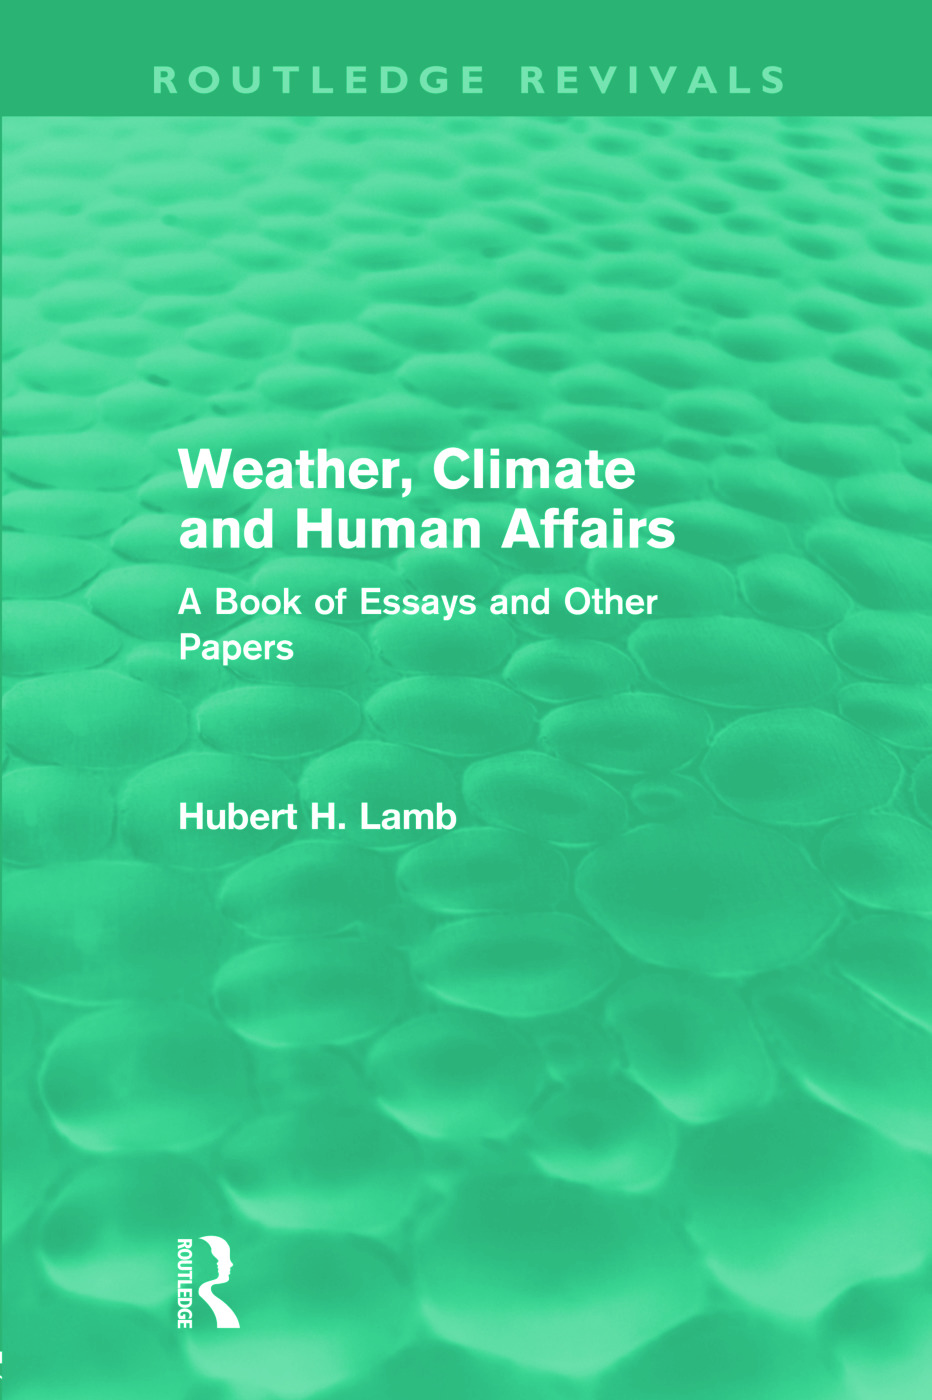 Weather, Climate and Human Affairs (Routledge Revivals): A Book of Essays and Other Papers, 1st Edition (Paperback) book cover